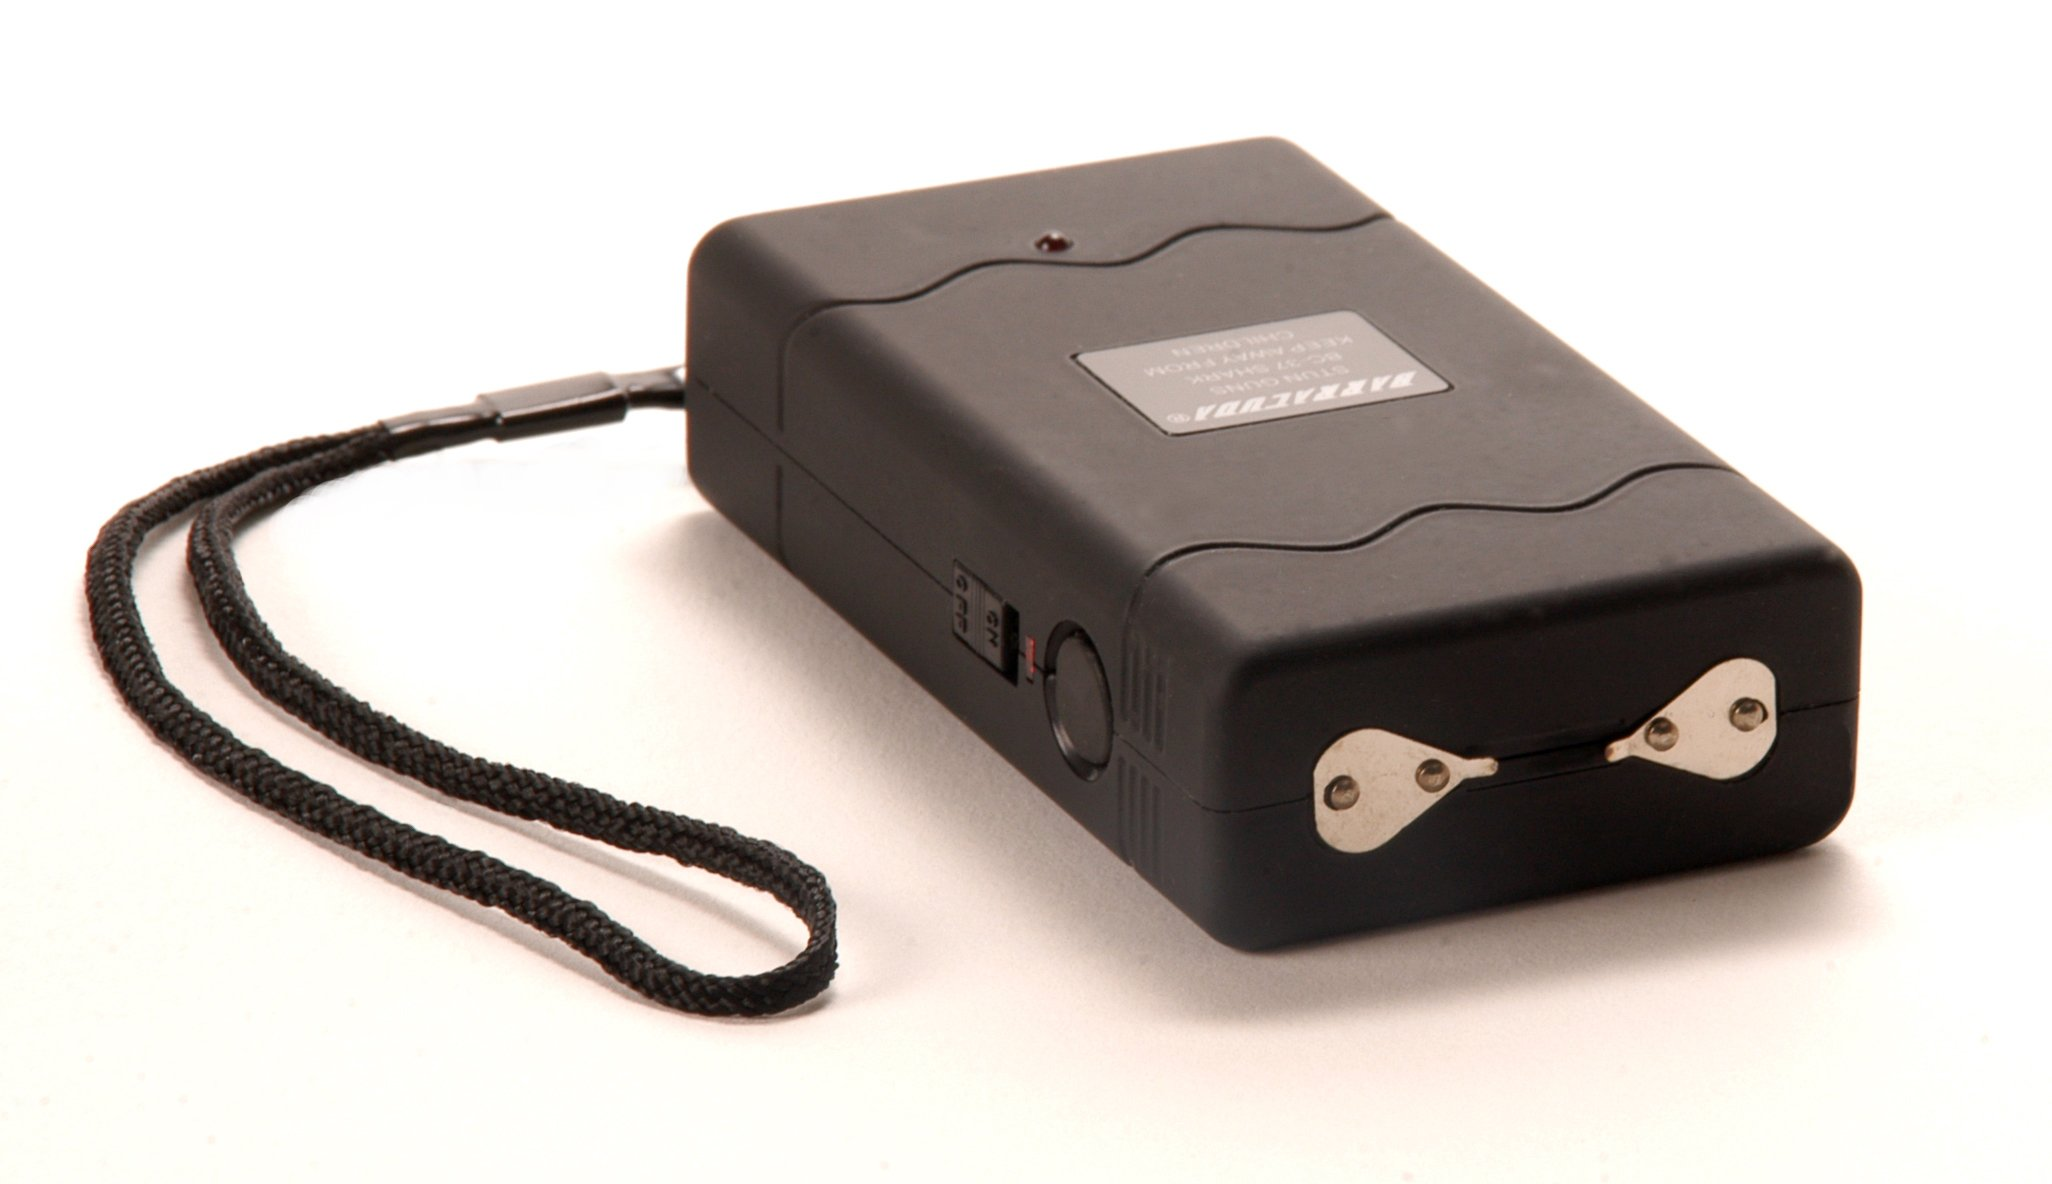 Barracuda BC-37 Shark Rechargeable Stun Gun with Safety/Disable Pin 3.7 Million